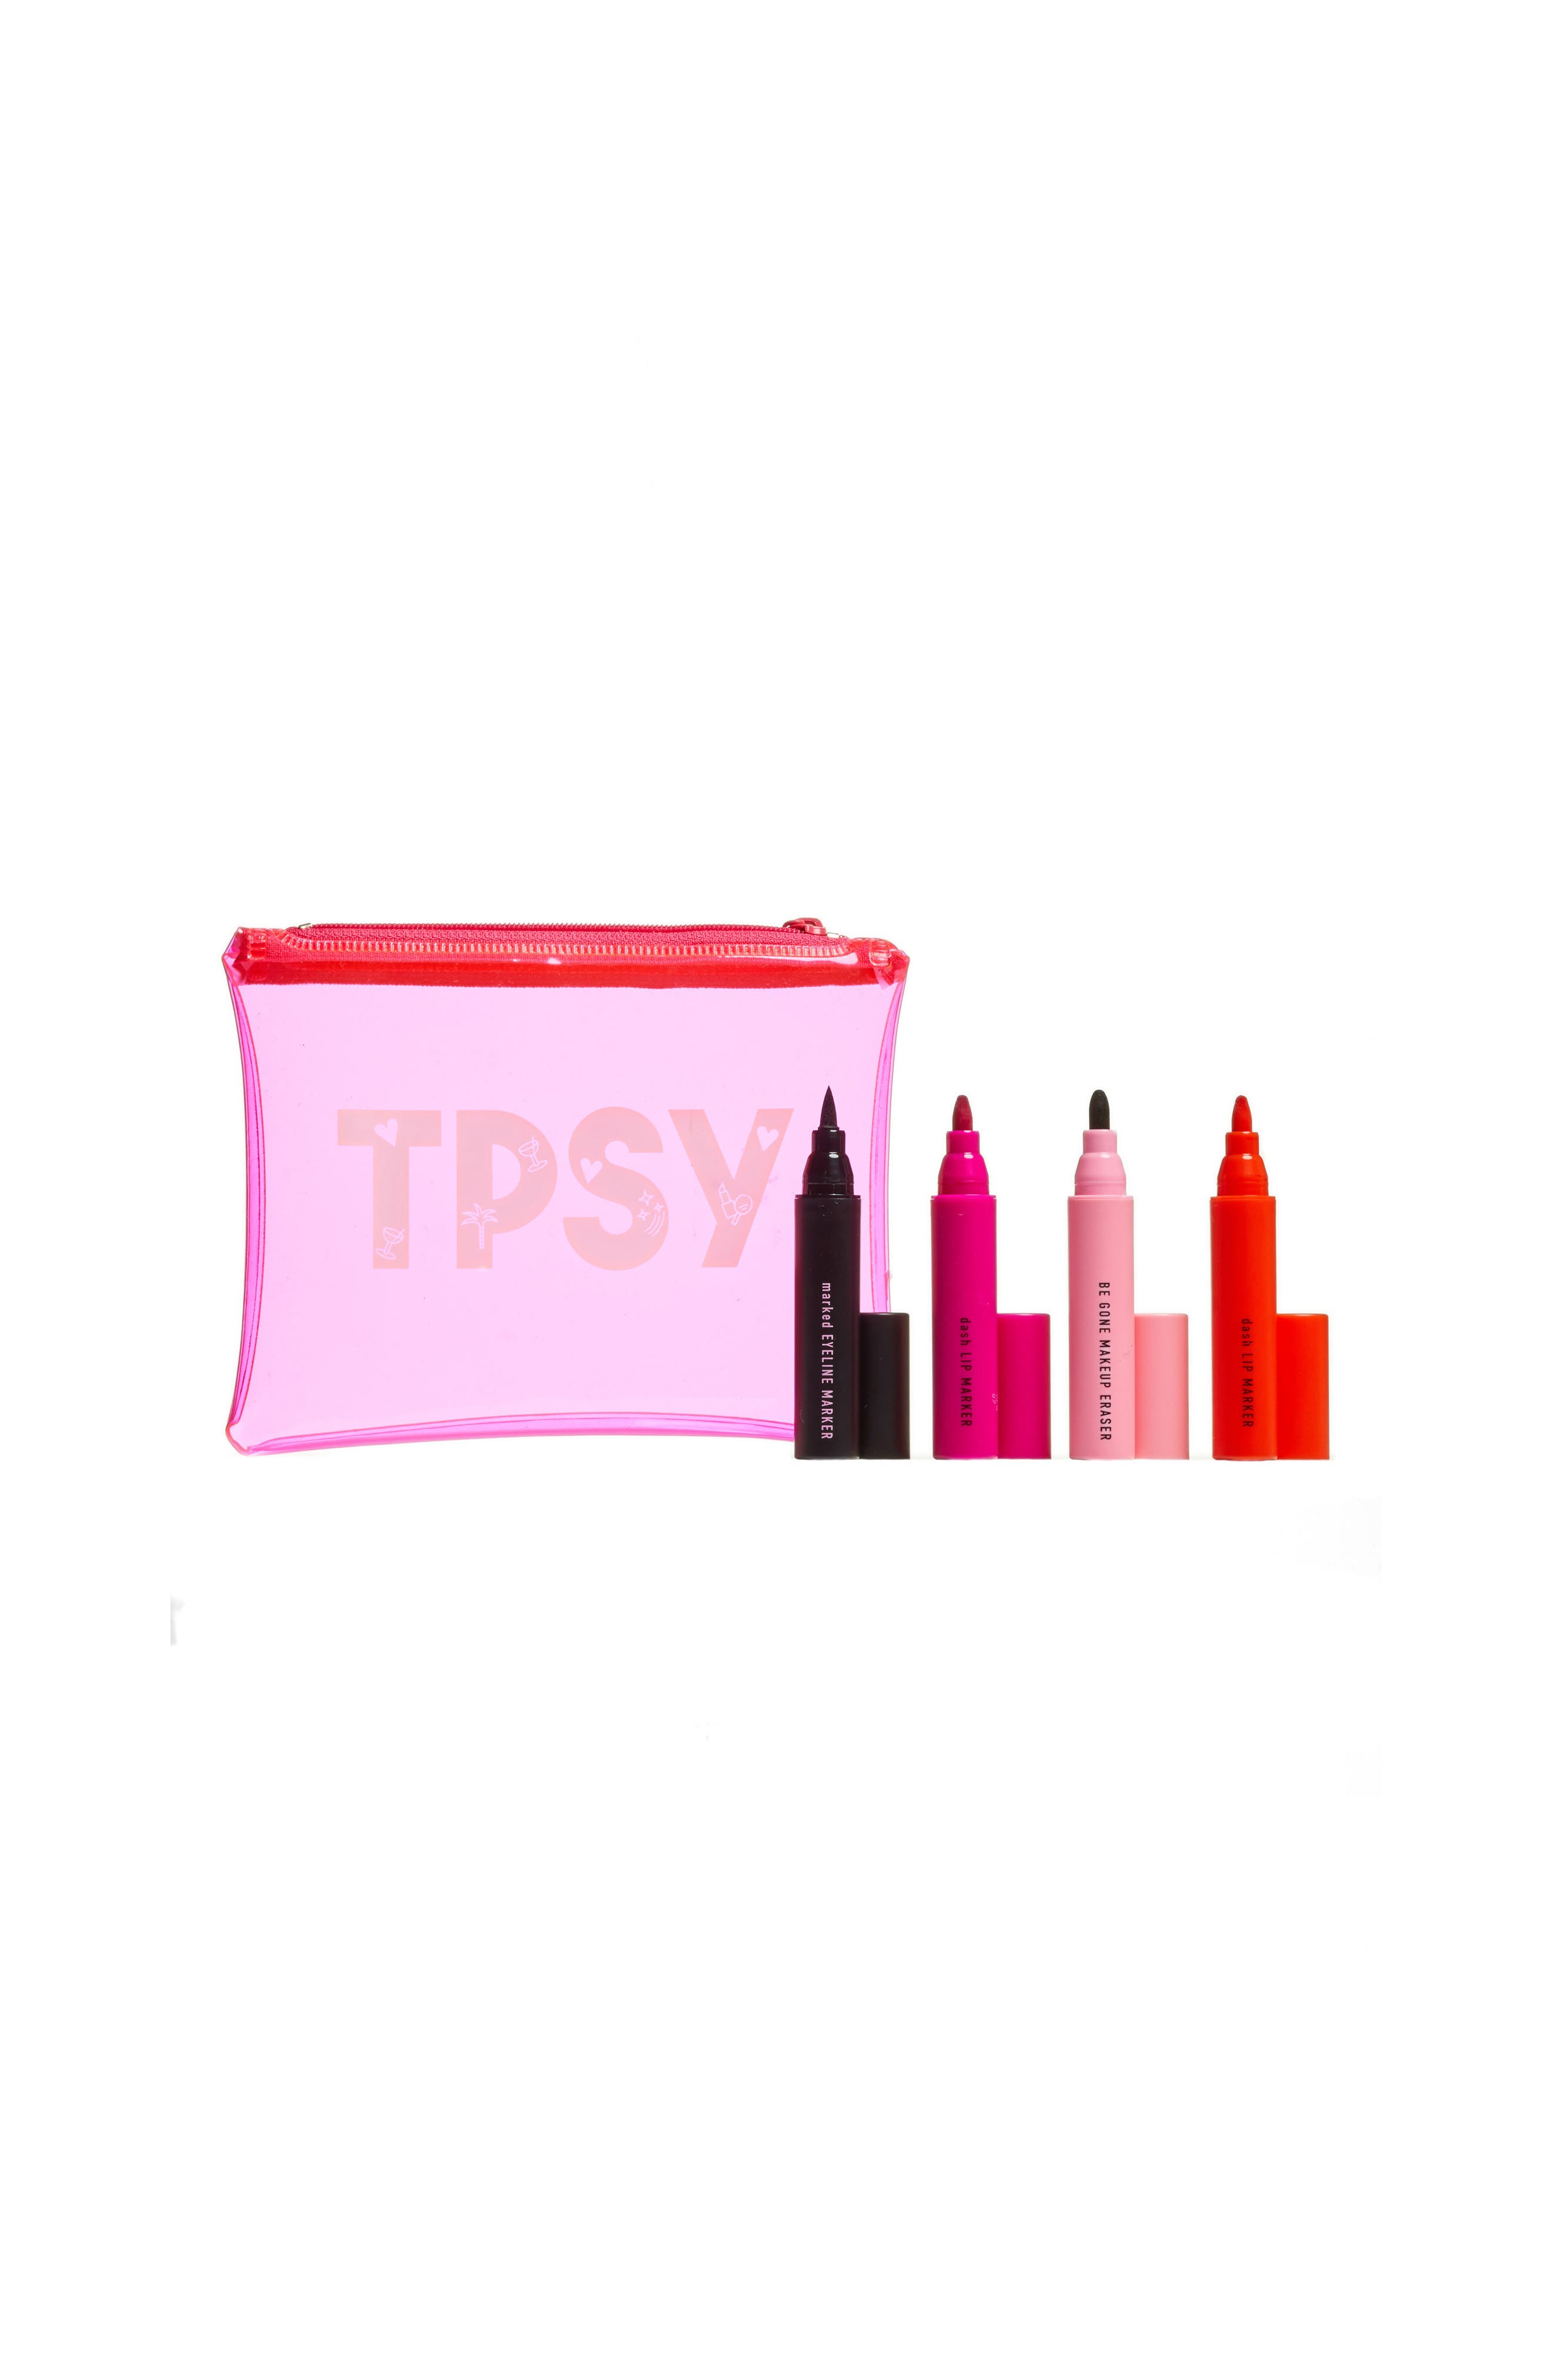 TPSY 4 Piece Special Edition Marker Set